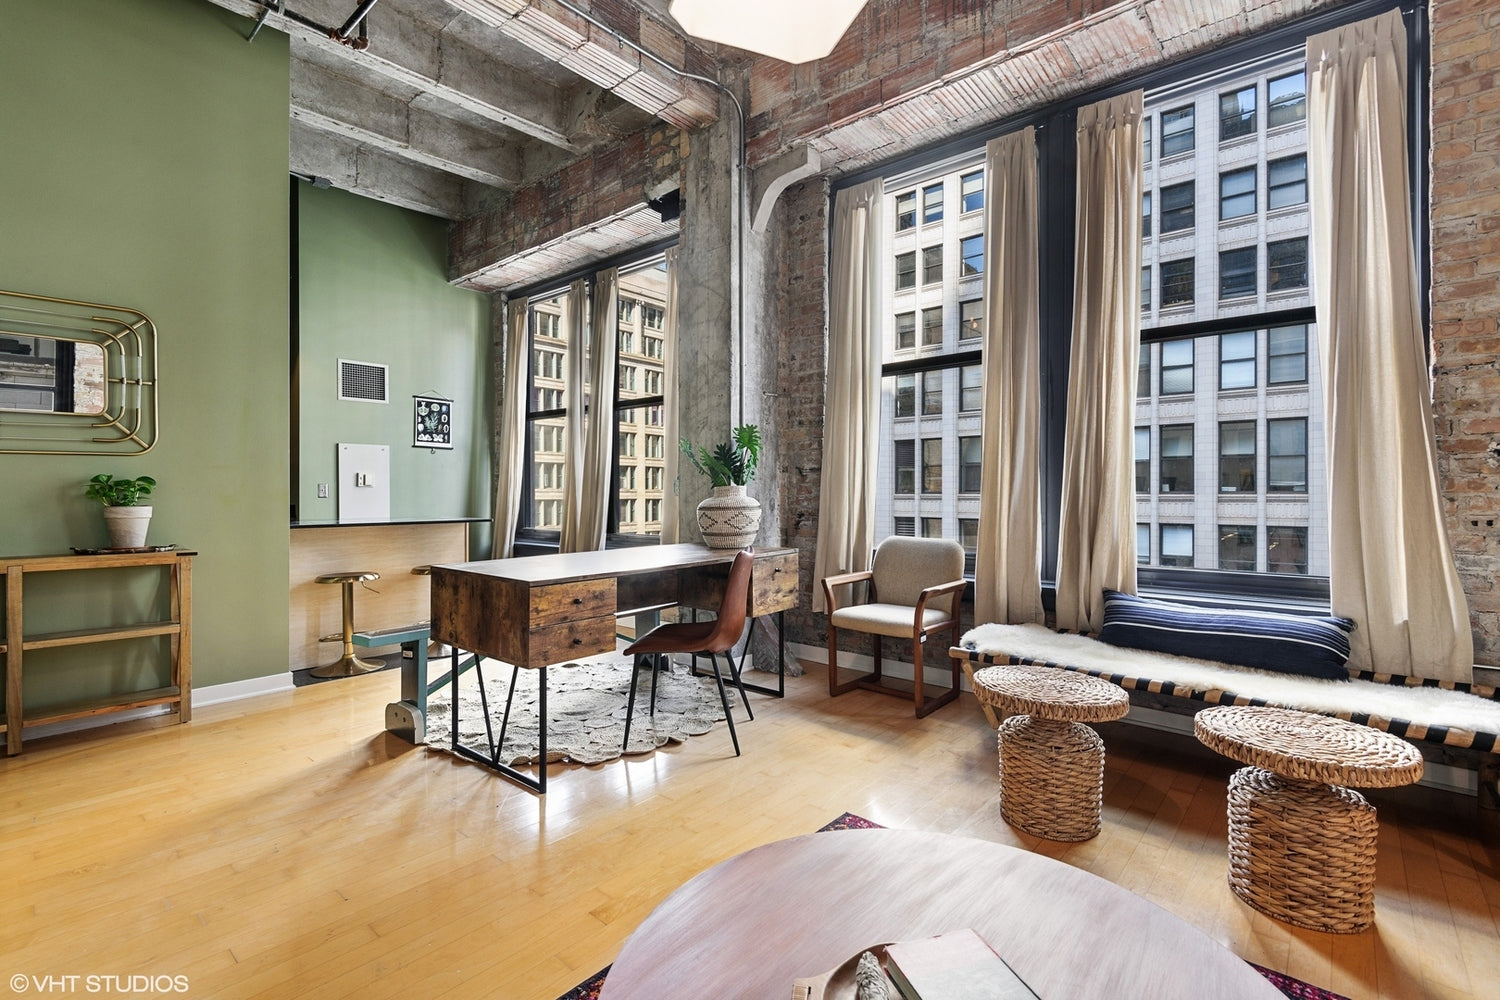 Eskell has real estate staging tips for all properties in Chicago's real estate market and beyond.